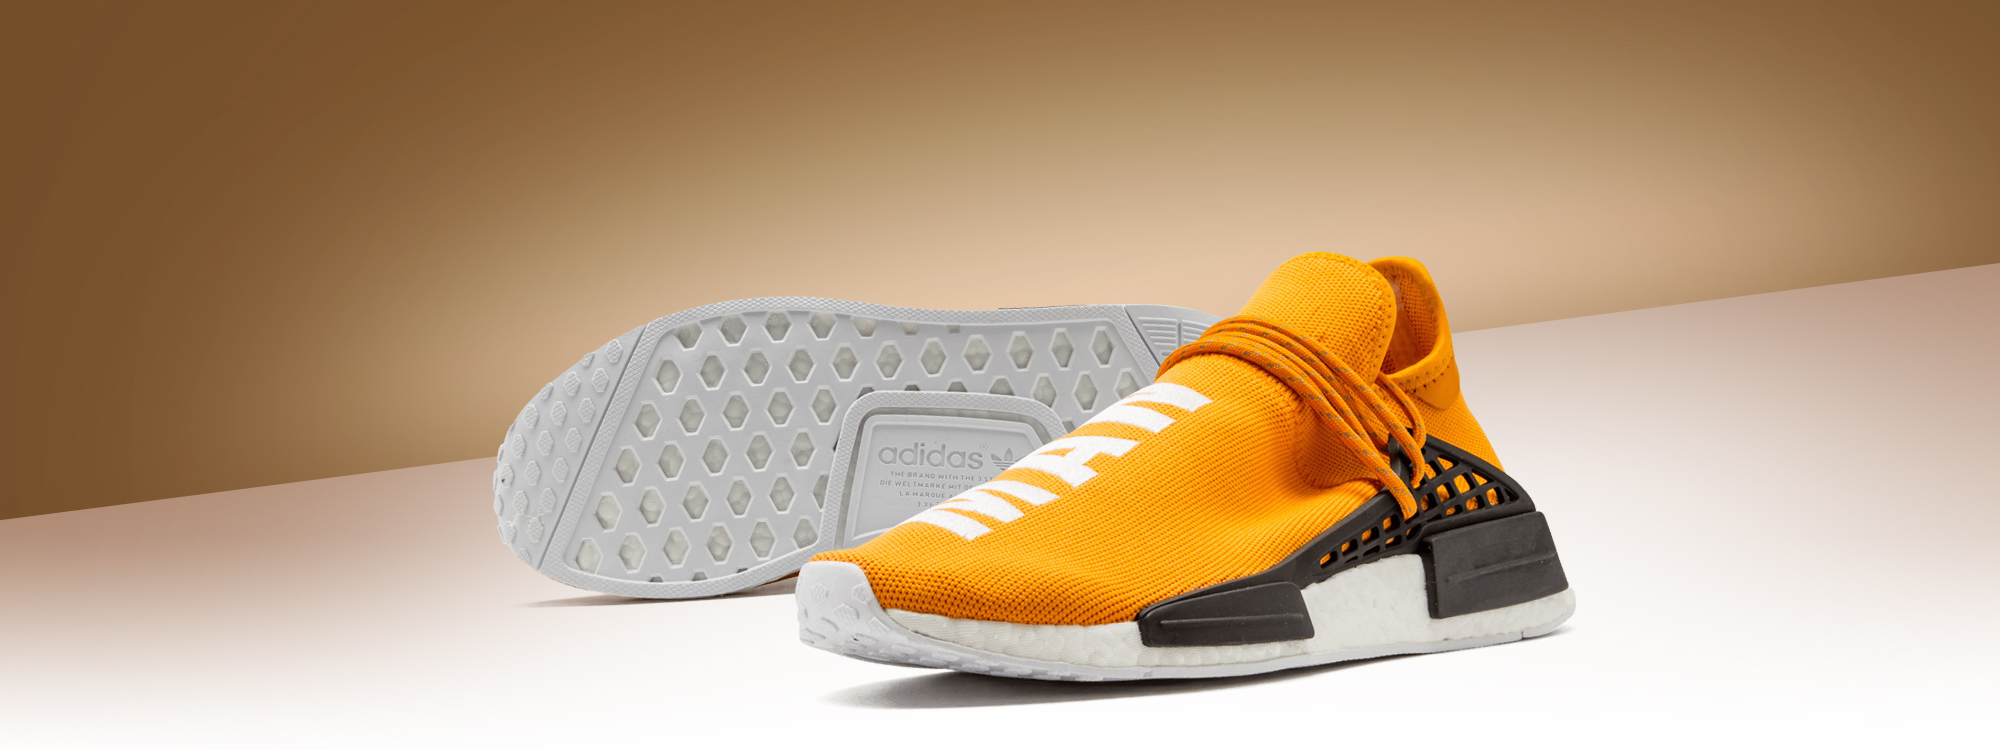 For sale Womens Human Race Adidas HU Tangerine / PW online